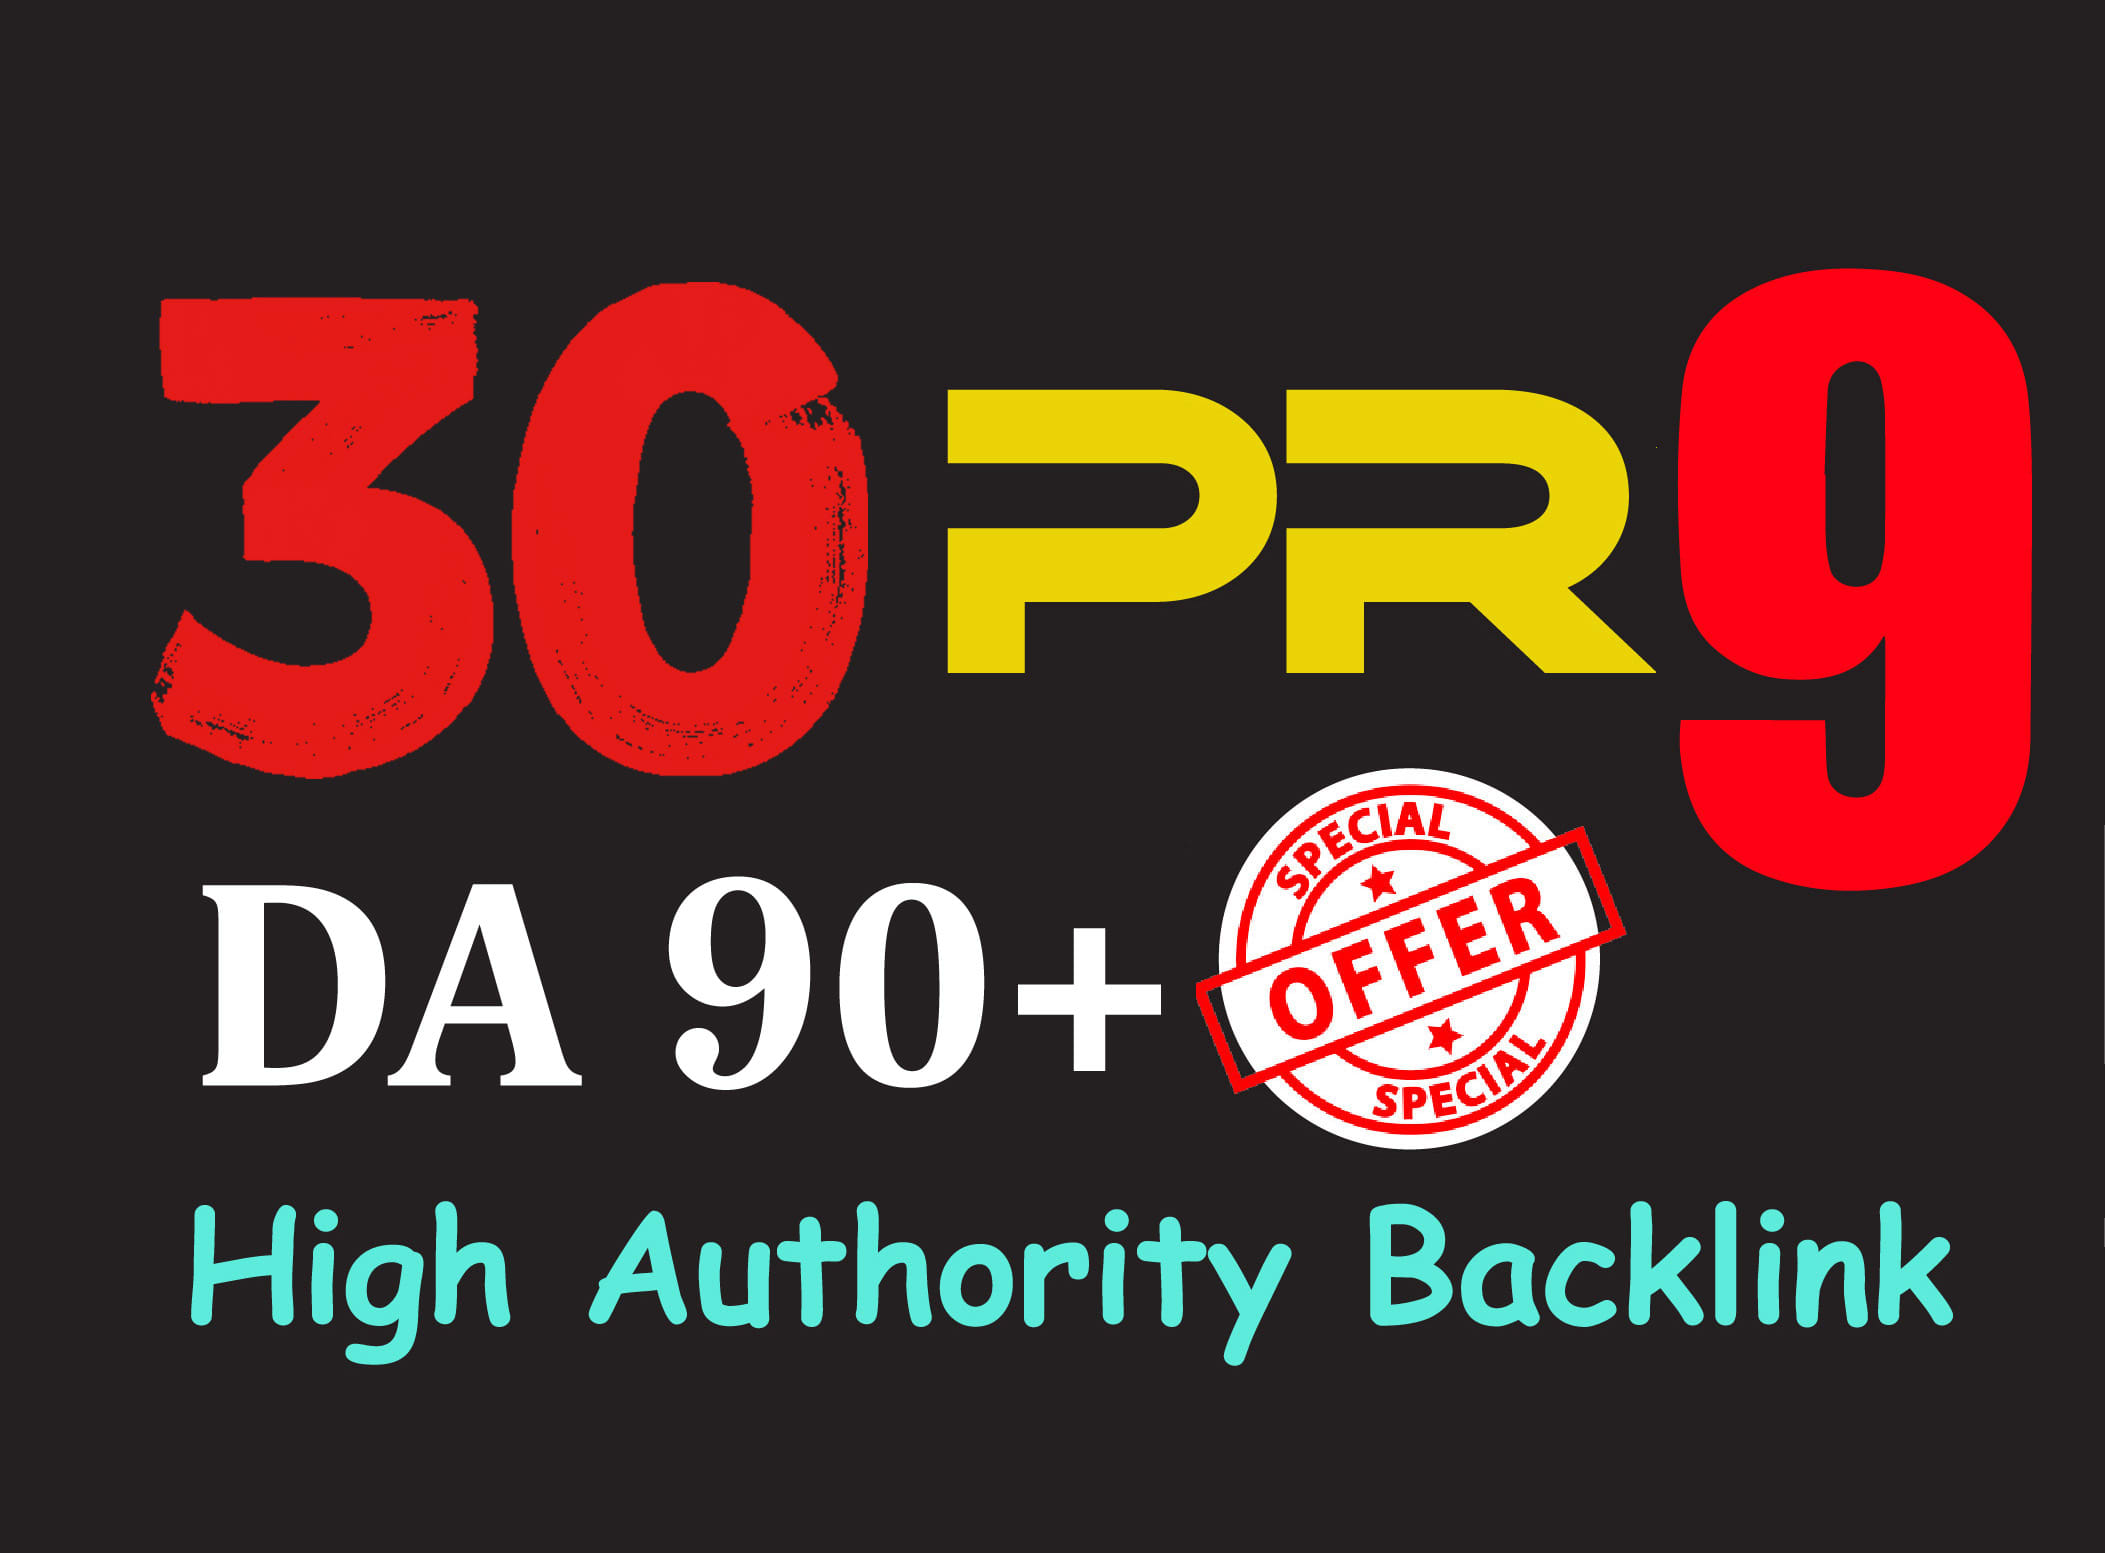 build 30 pr9 da 90 high authority SEO backlinks